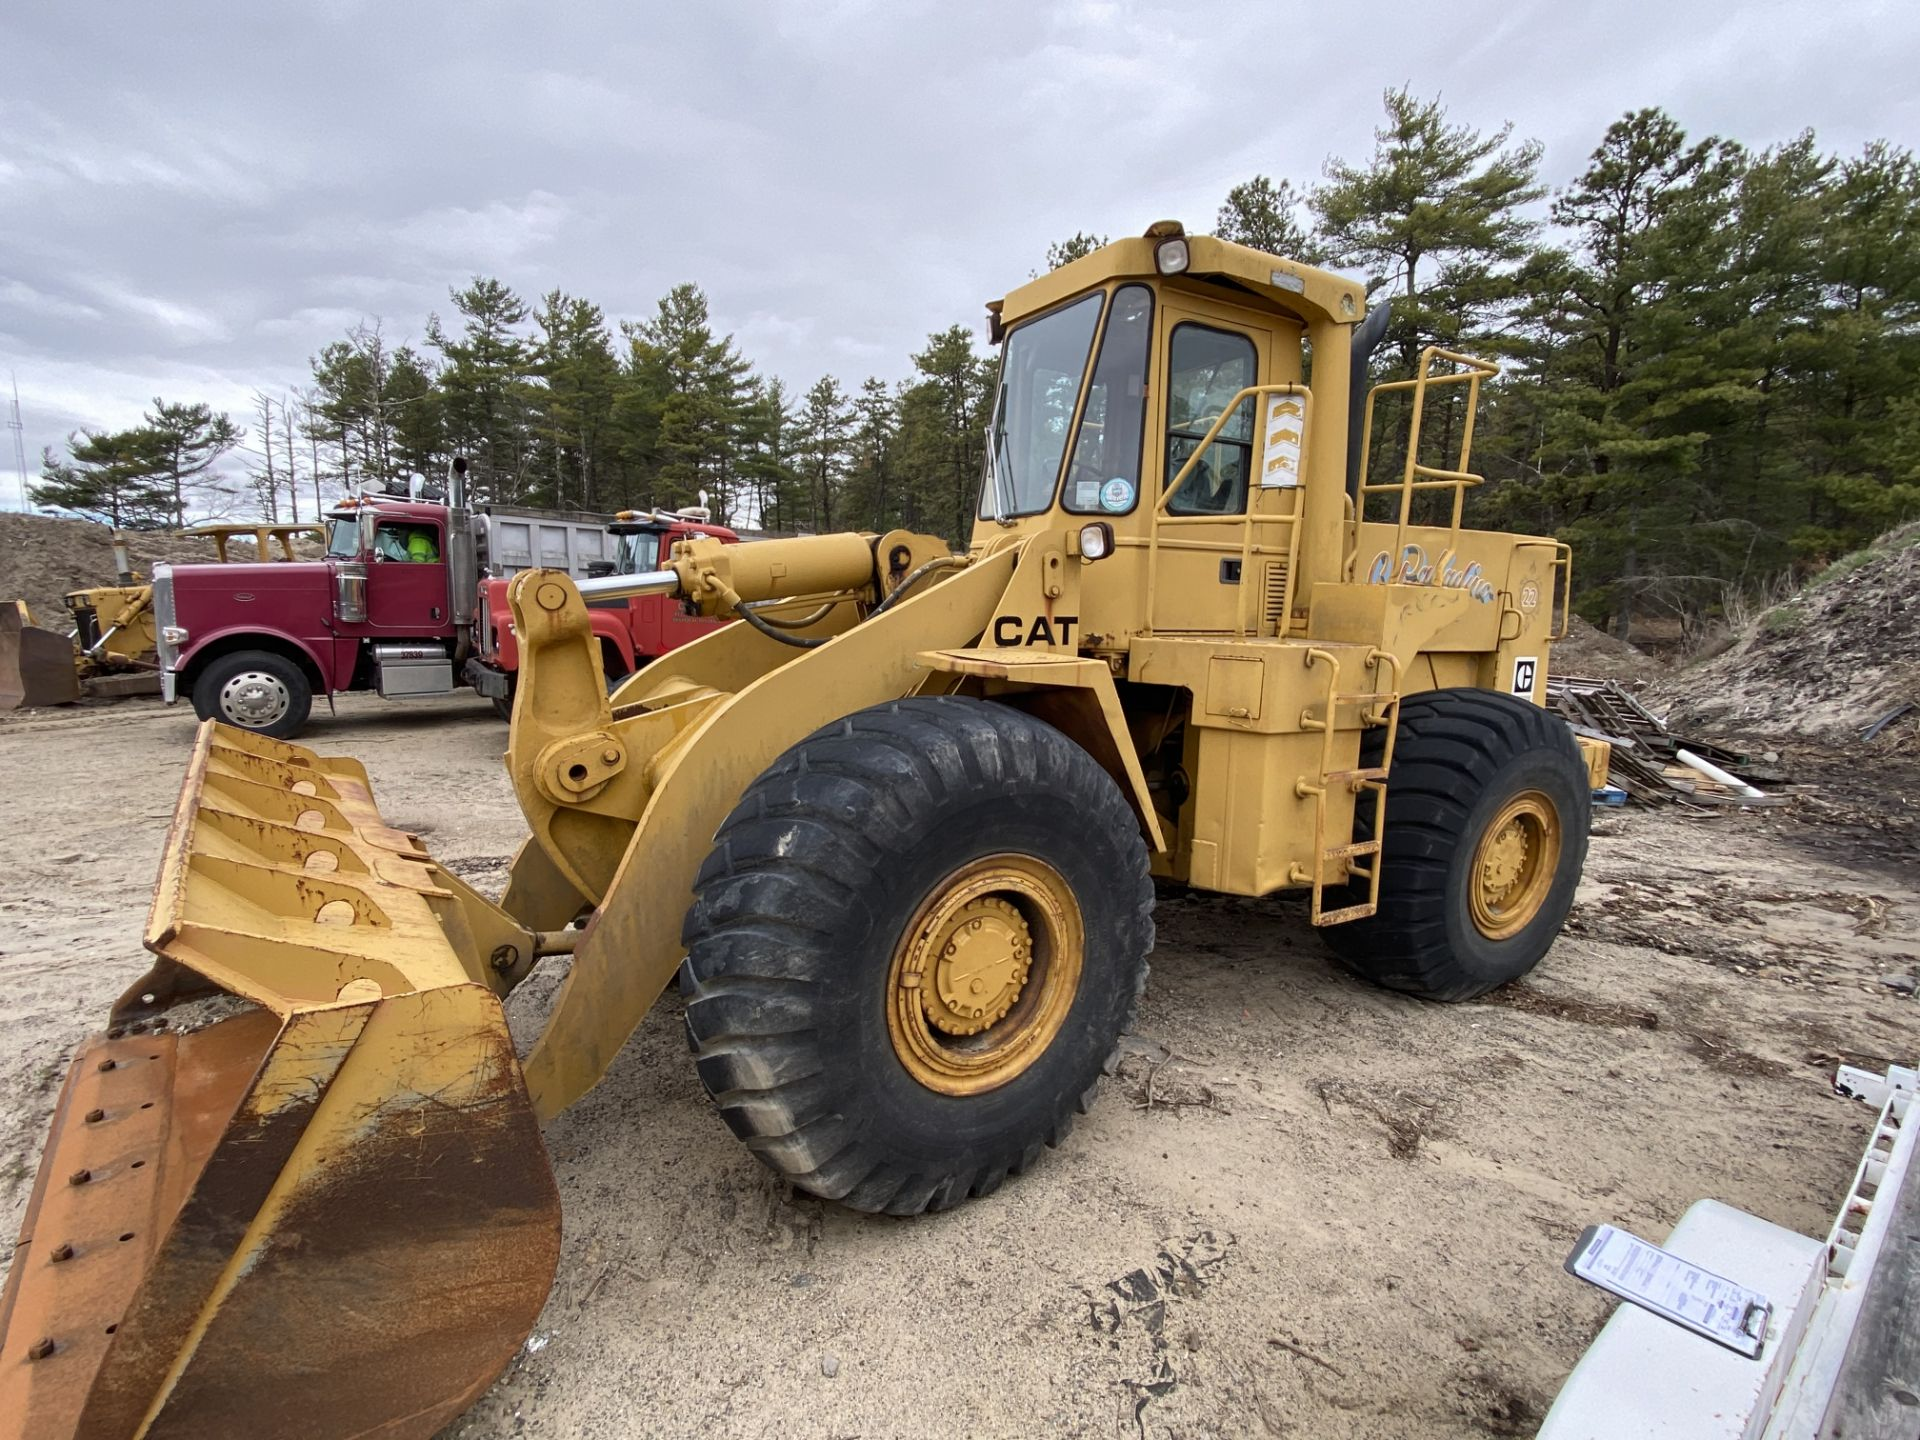 1980 Caterpillar 966D Wheel Loader s/n 99Y02108, Meter Reads 4,664 Hours, Have Title - Image 4 of 23